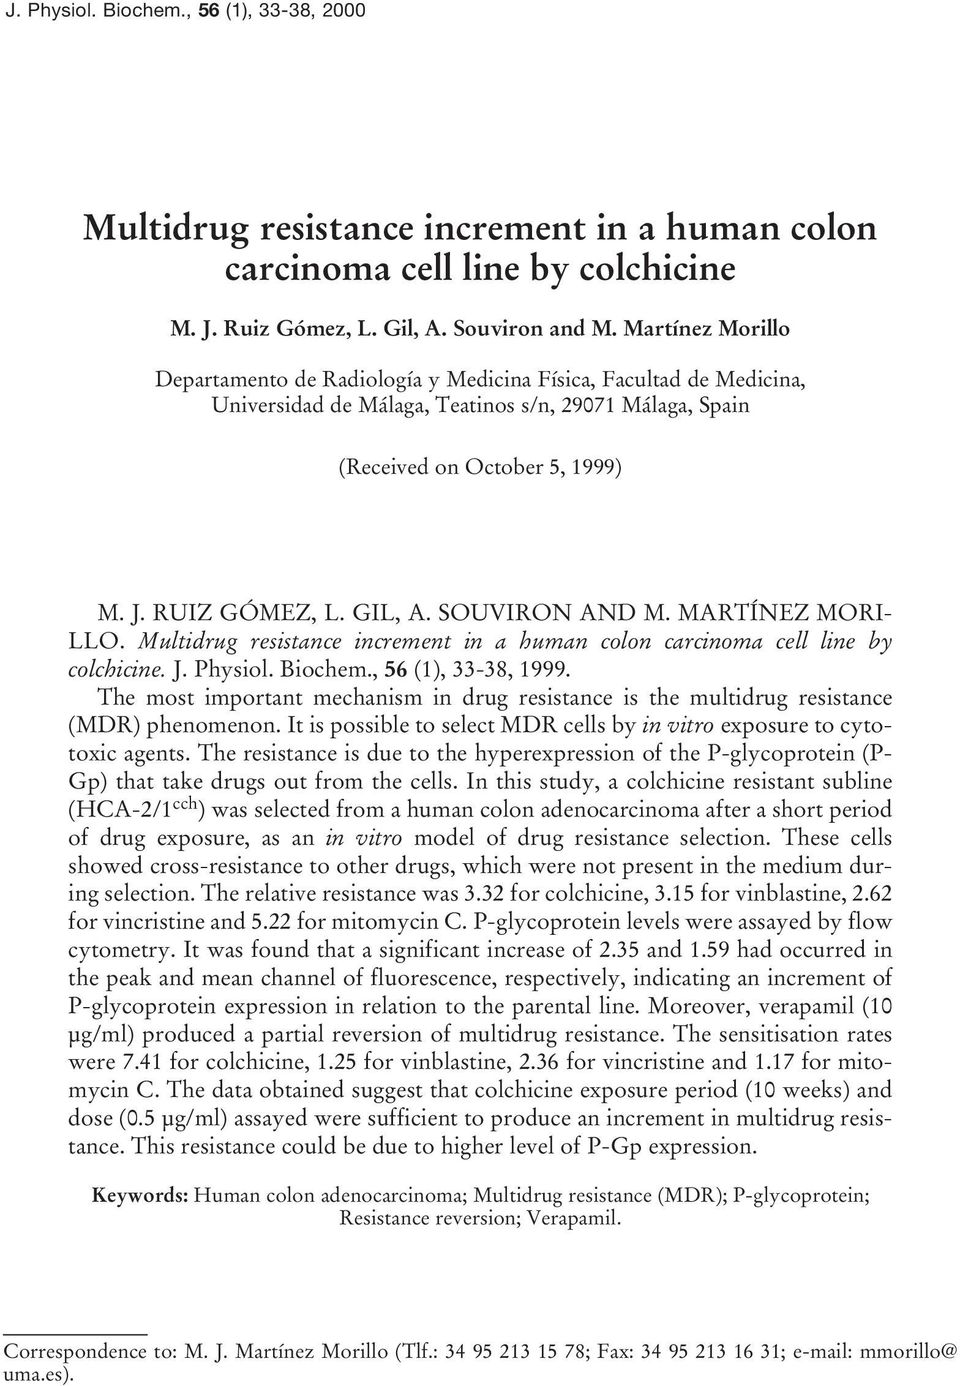 SOUVIRON AND M. MARTÍNEZ MORI- LLO. Multidrug resistance increment in a human colon carcinoma cell line by colchicine. J. Physiol. Biochem., 56 (1), 33-38, 1999.